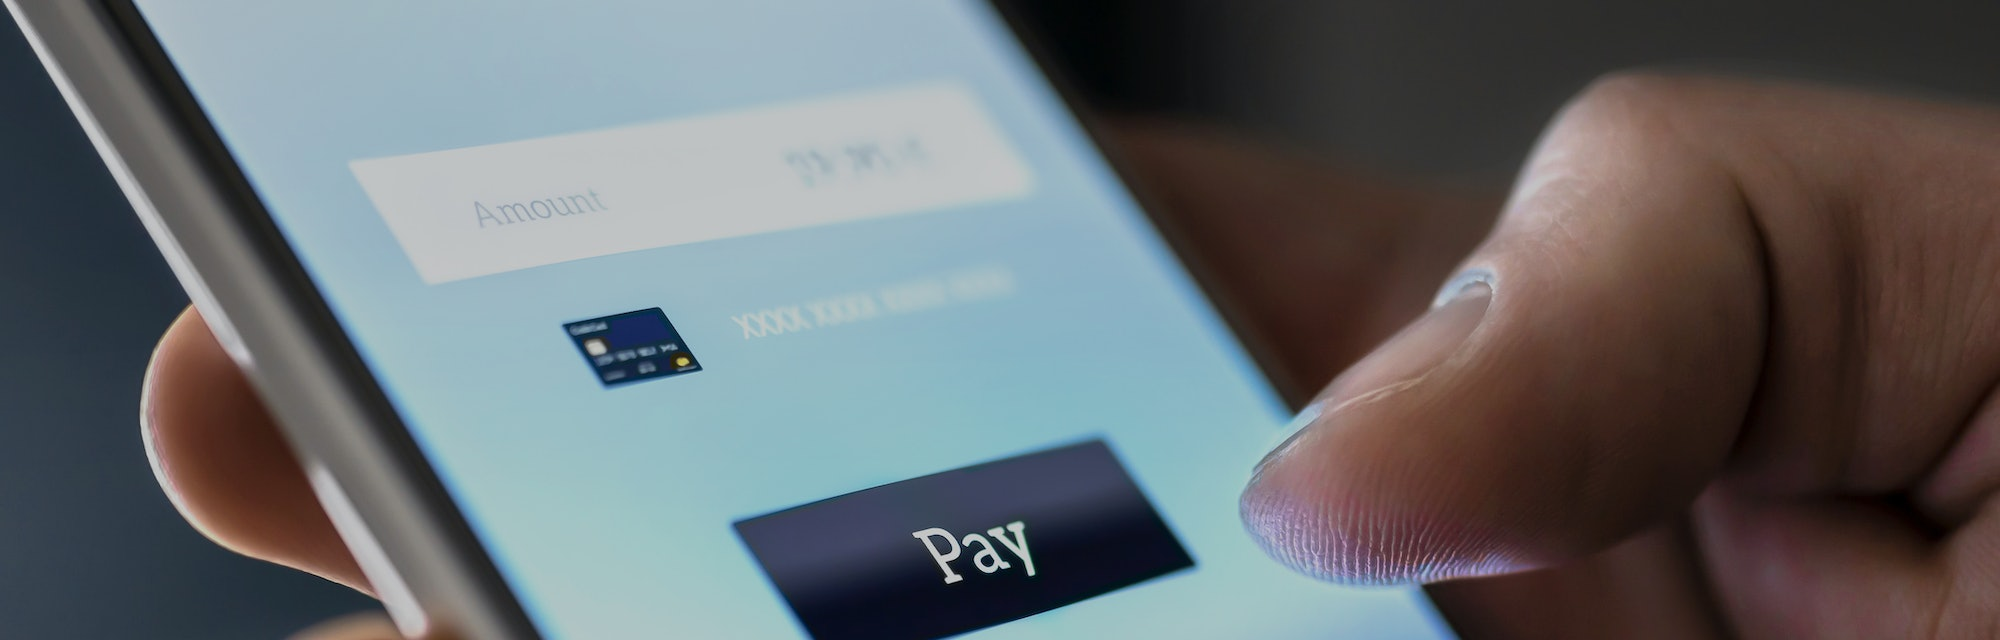 Mobile payment with wallet app and wireless nfc technology. Man paying and shopping with smartphone ...